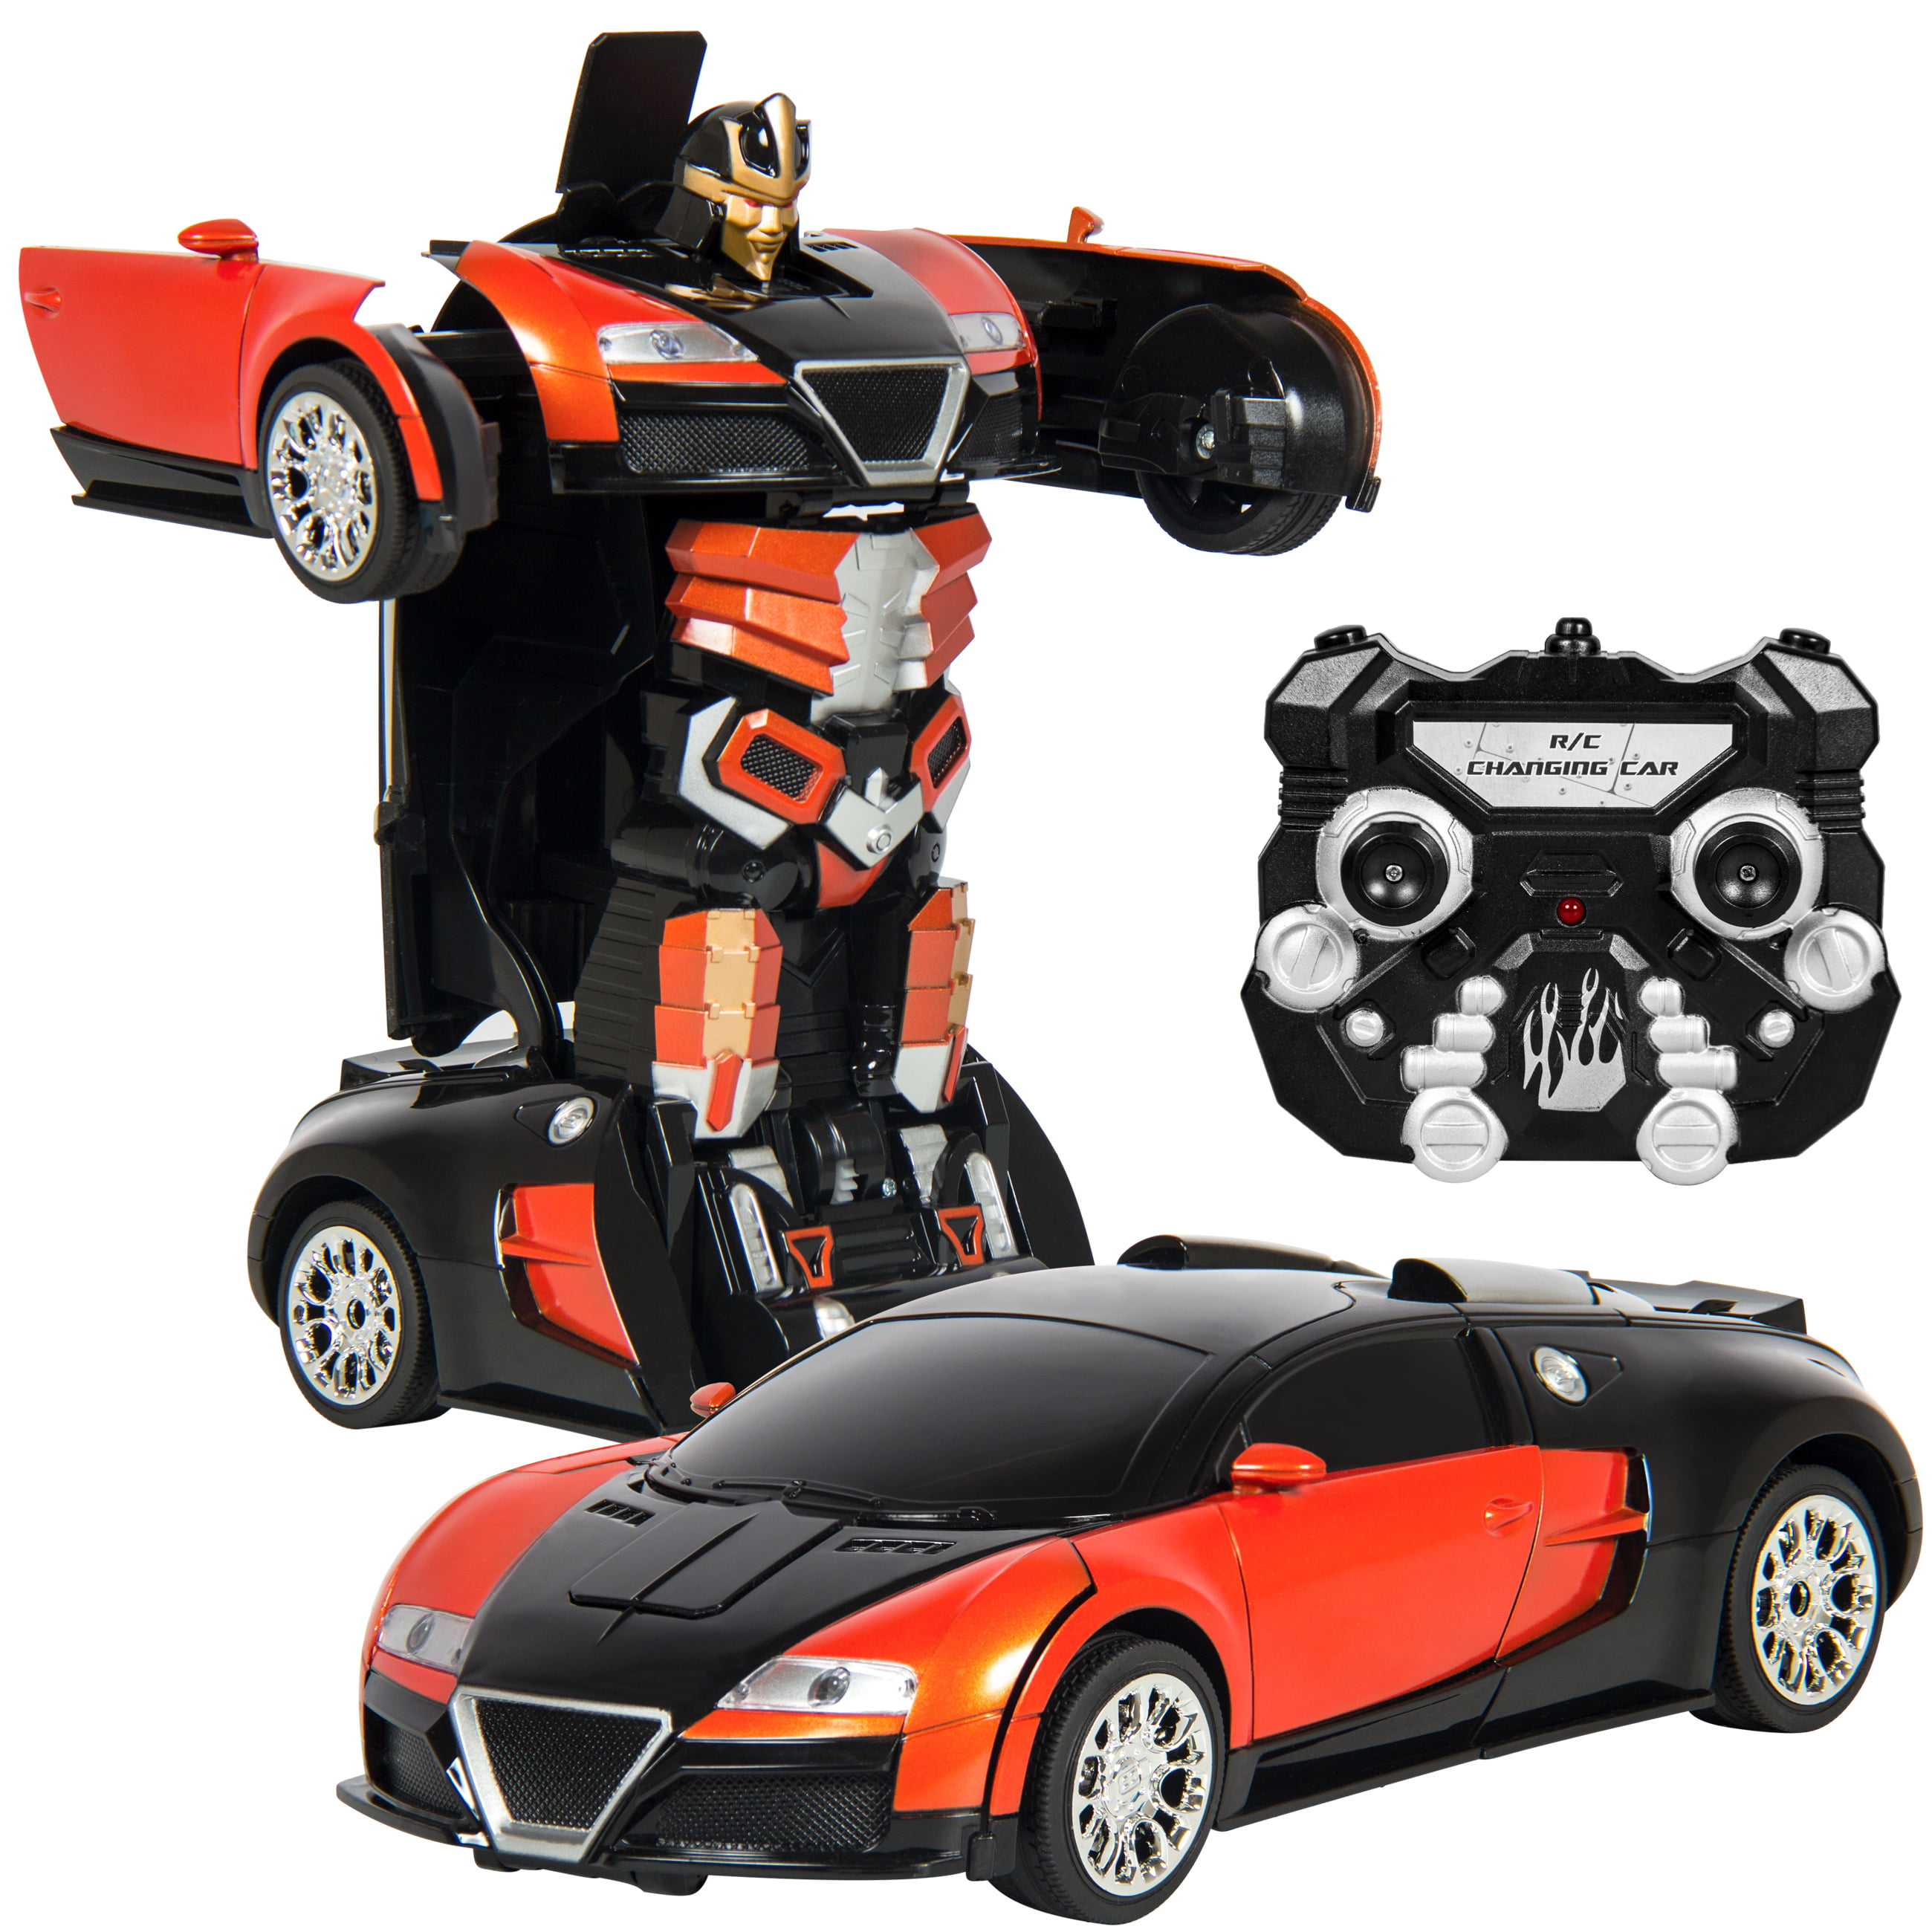 Best Choice Products Kids Toy Transformer RC Robot Car Remote Control Car- Orange by